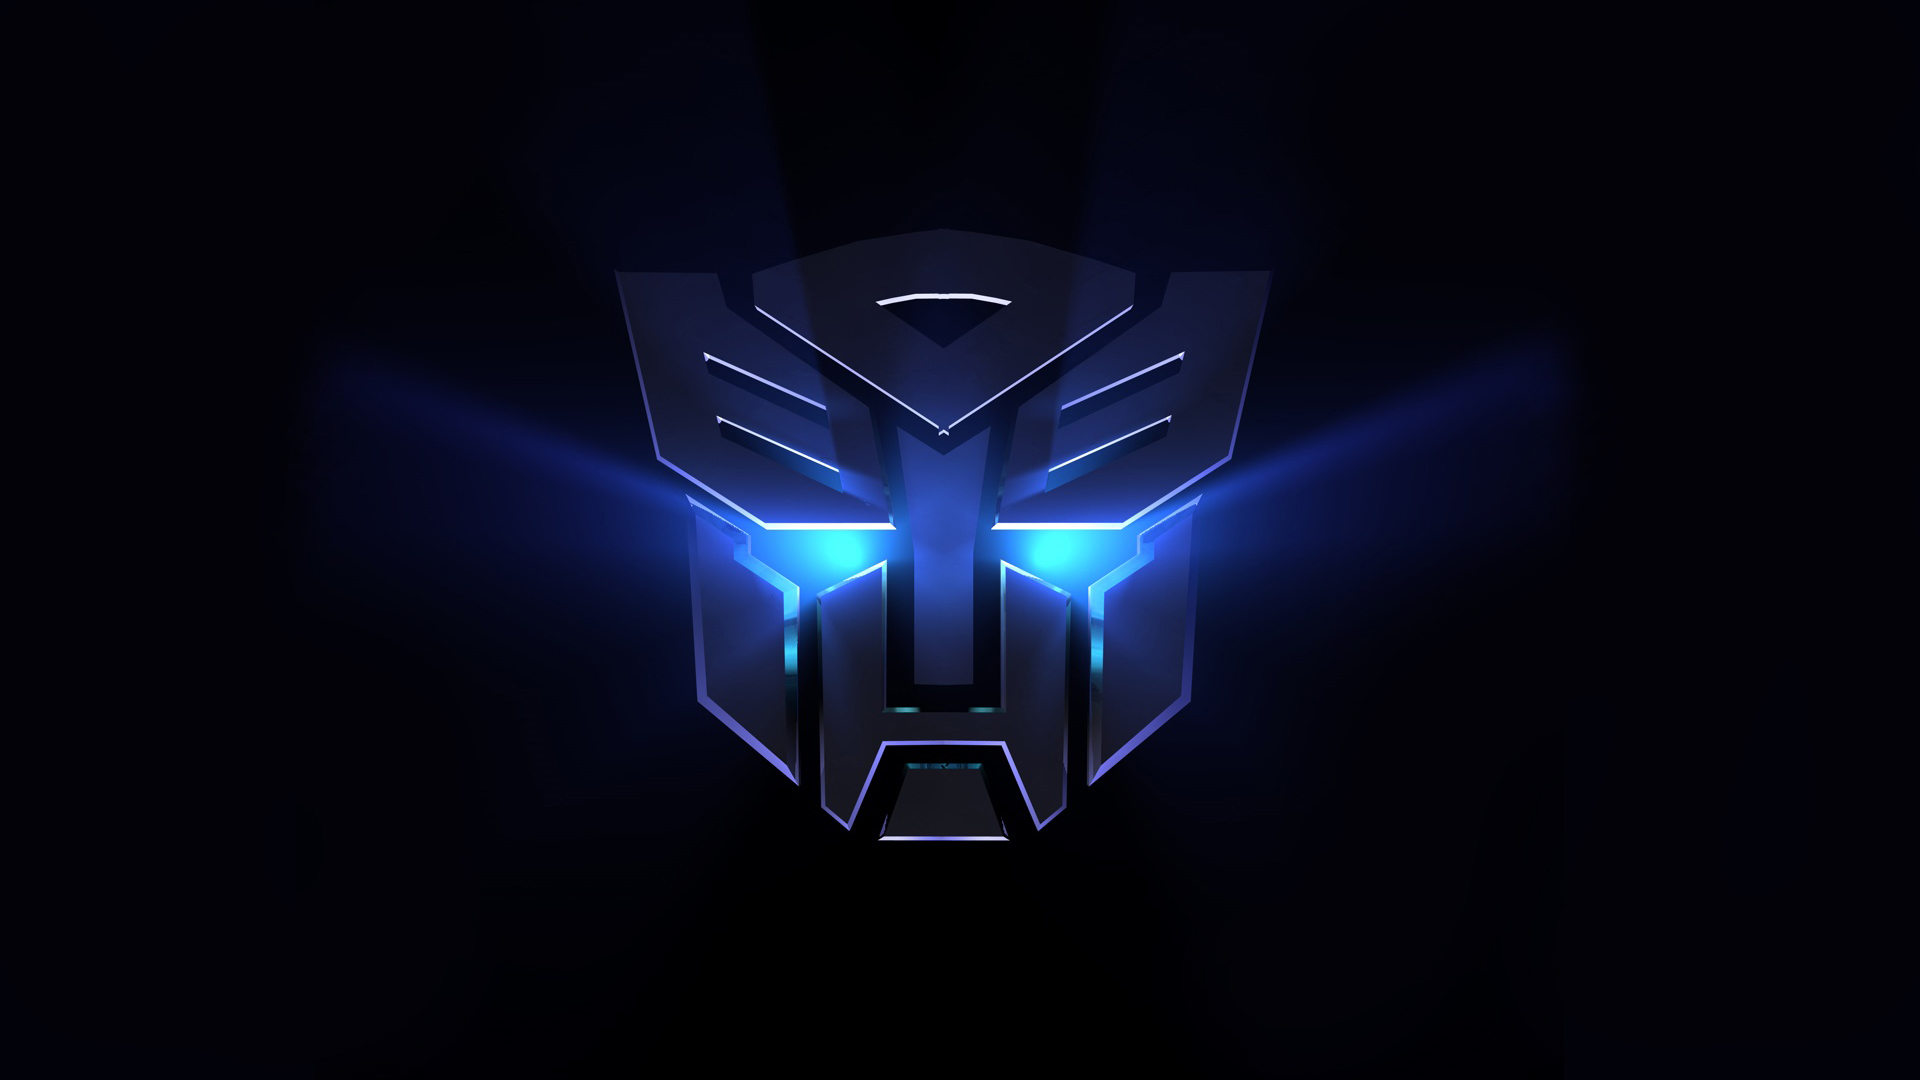 45 hd transformer wallpapers/backgrounds for free download